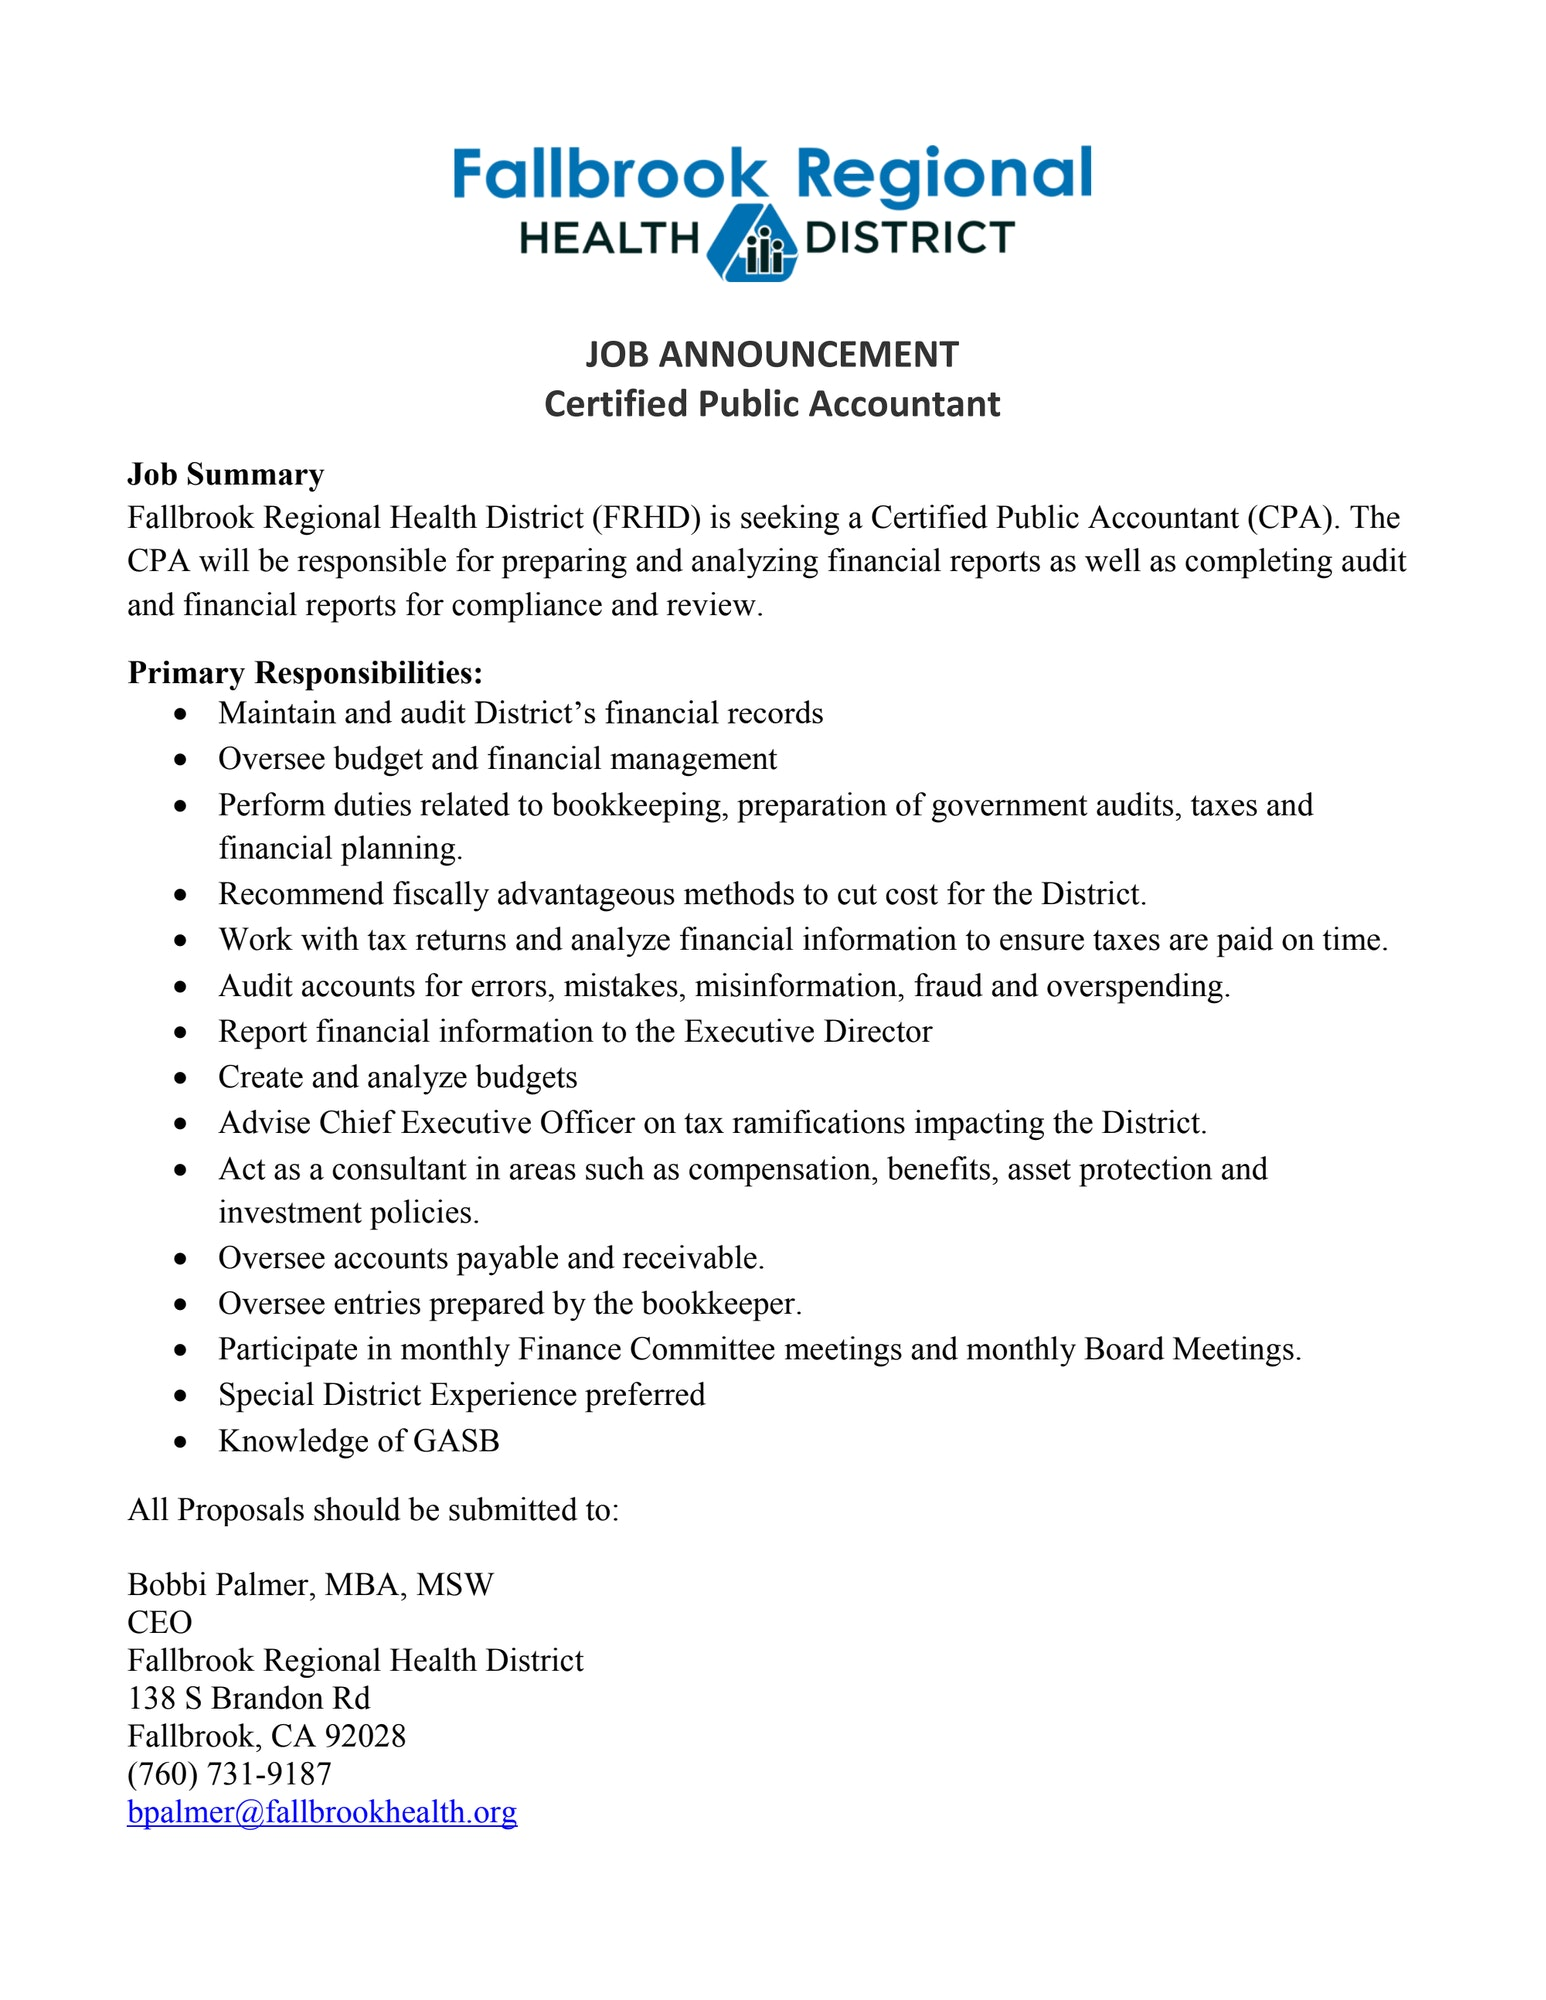 Press Releases - Fallbrook Regional Health District